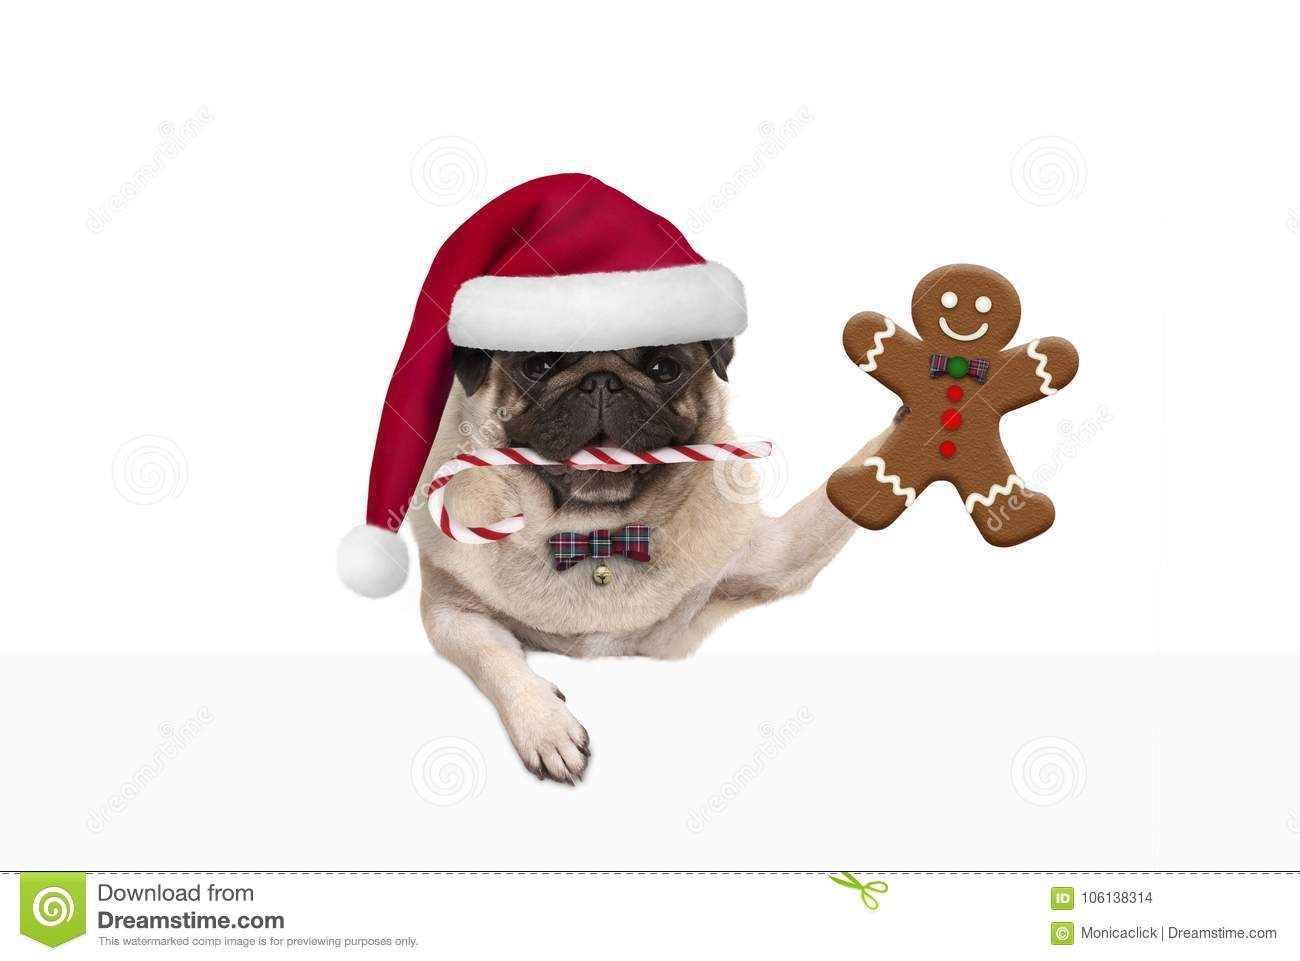 d697ced47271c Cute Christmas Pug Dog With Santa Hat And Candy Cane